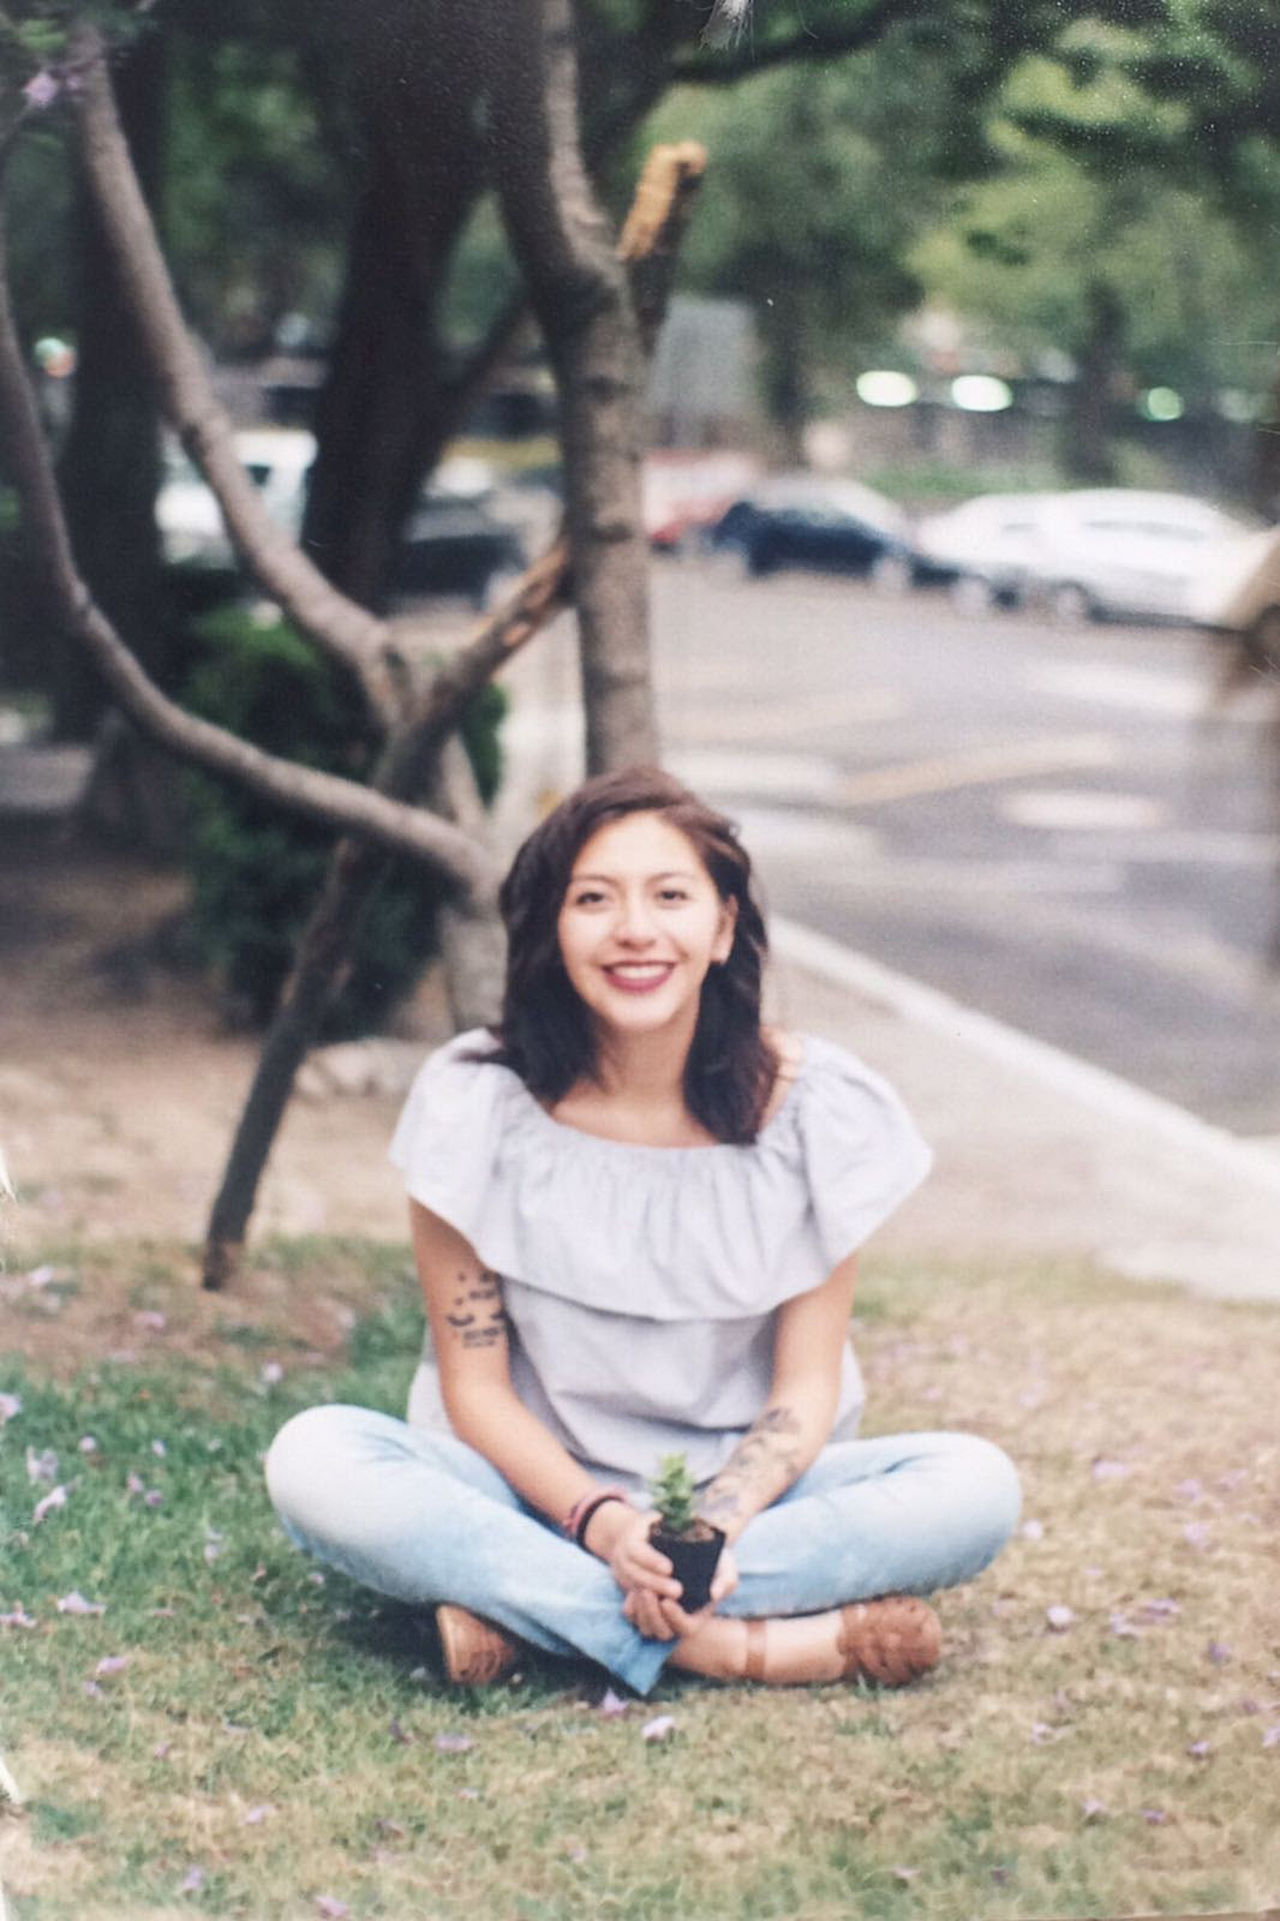 Sitting Smiling Cross-legged Happiness Adult Casual Clothing Only Women Nature One Person People Women One Woman Only Full Length Outdoors Tree Adults Only Portrait Beauty Relaxation Beautiful People Filmisnotdead